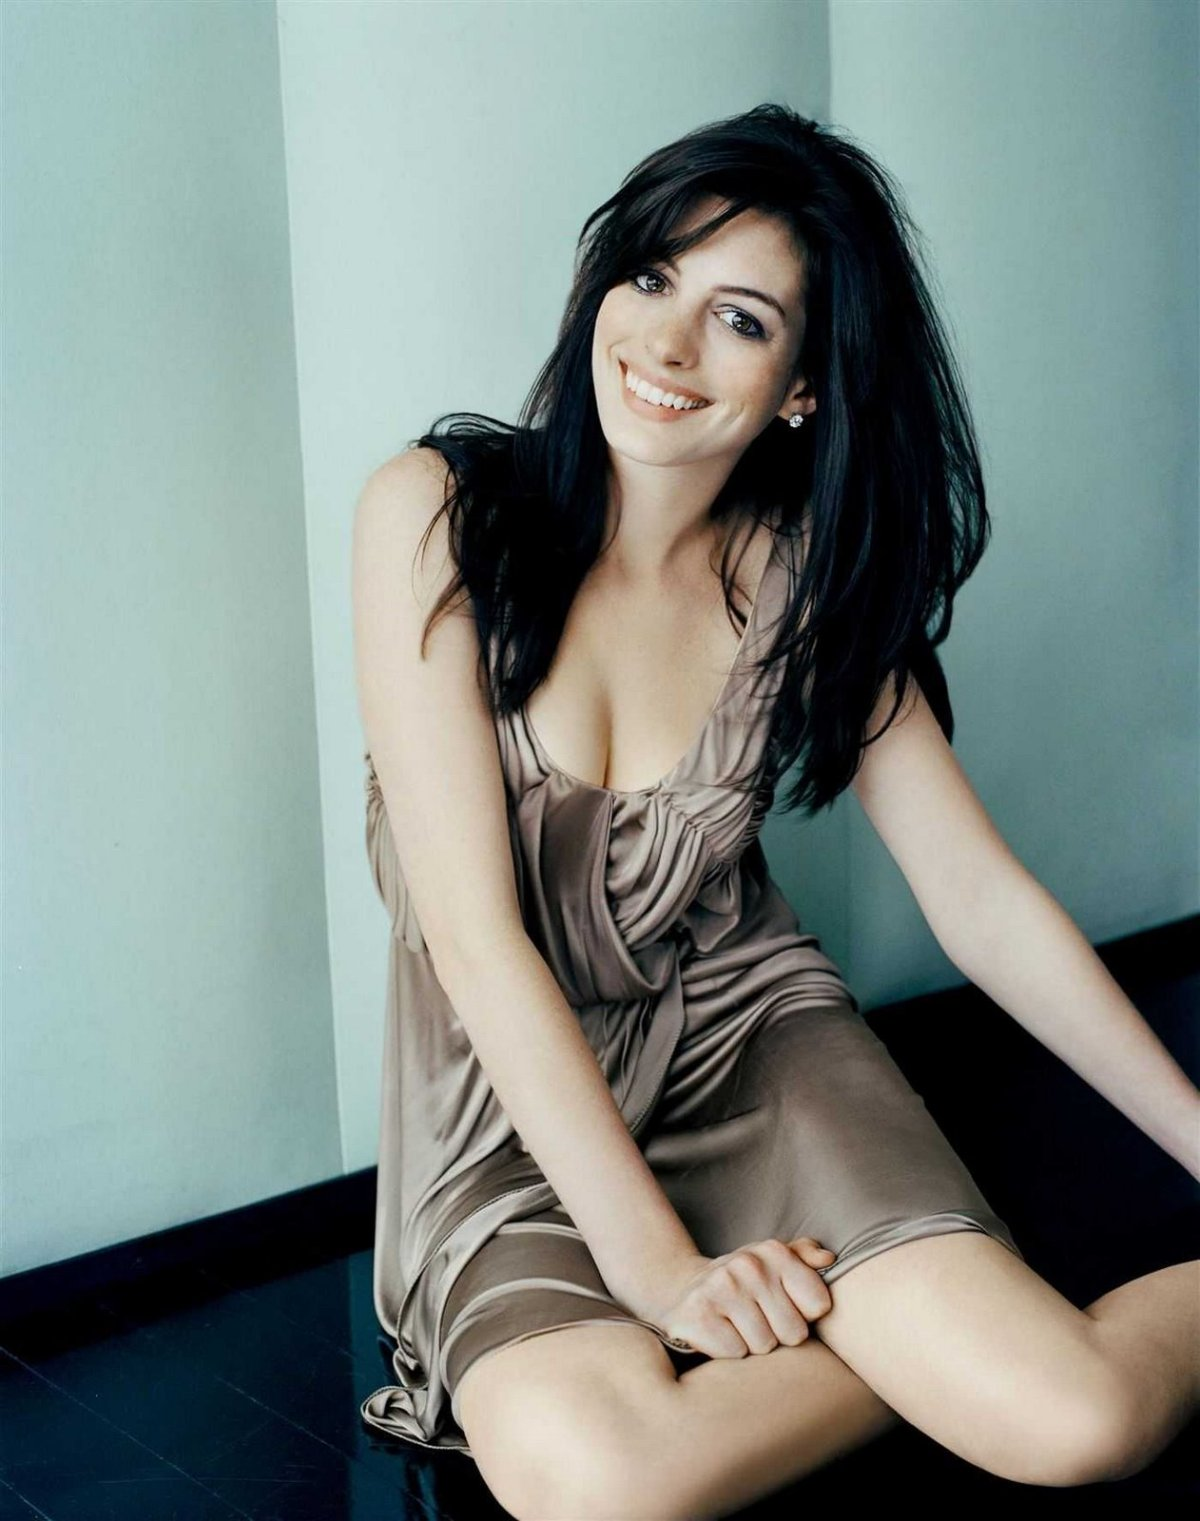 http://sweetcelebrity.files.wordpress.com/2008/06/hathaway-003.jpg?w=1200